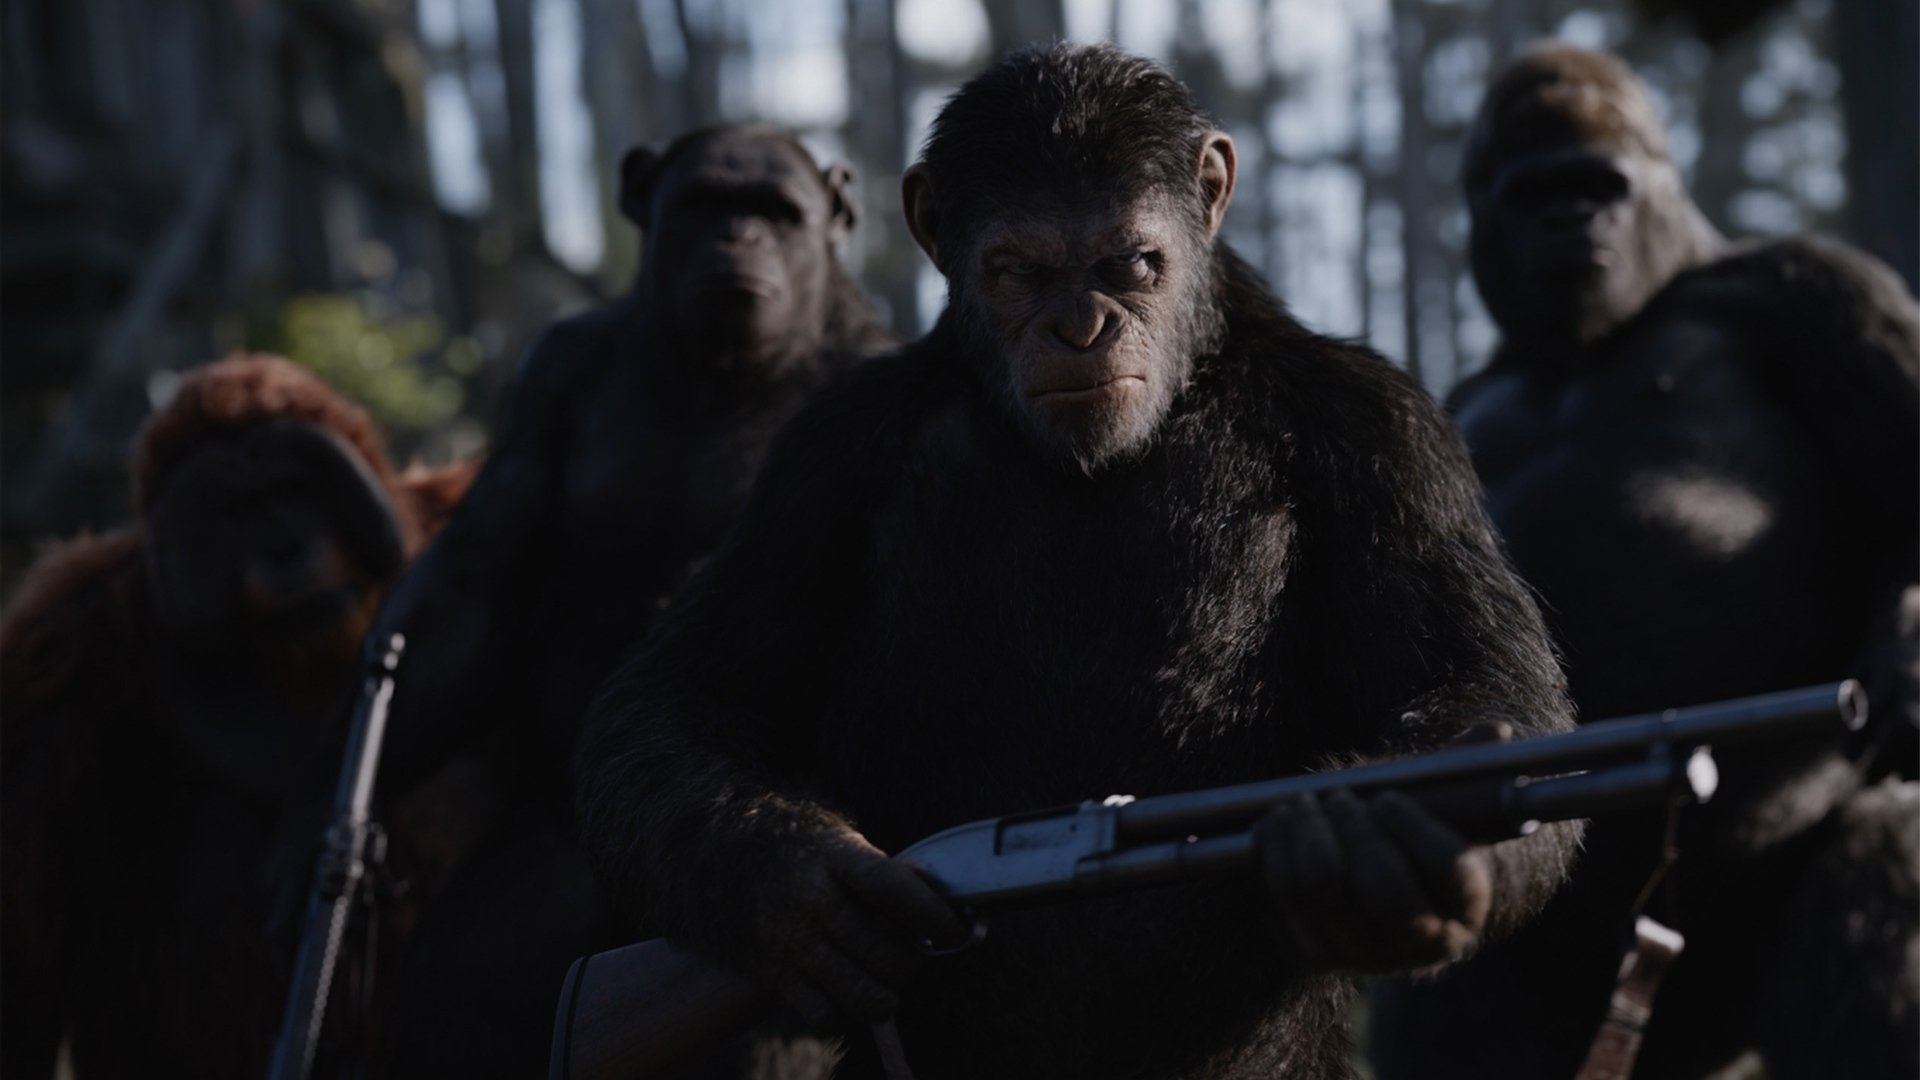 19 War For The Planet Of The Apes Hd Wallpapers Background